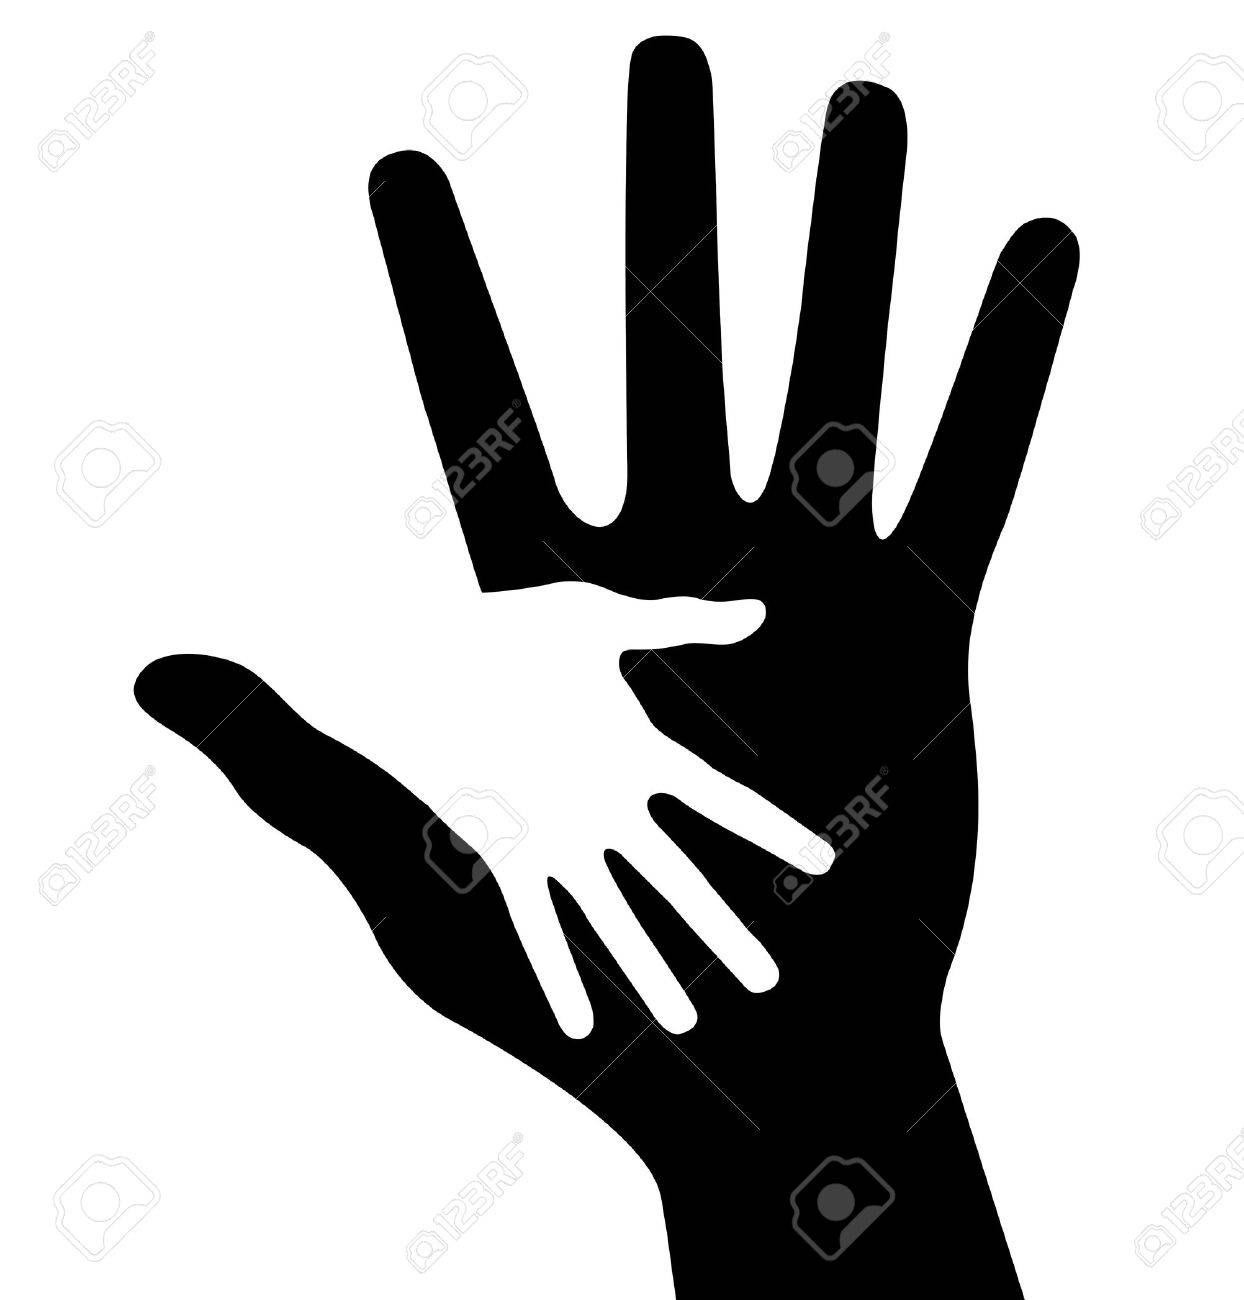 Caring hand, abstract vector illustration for design Stock Vector - 14475672